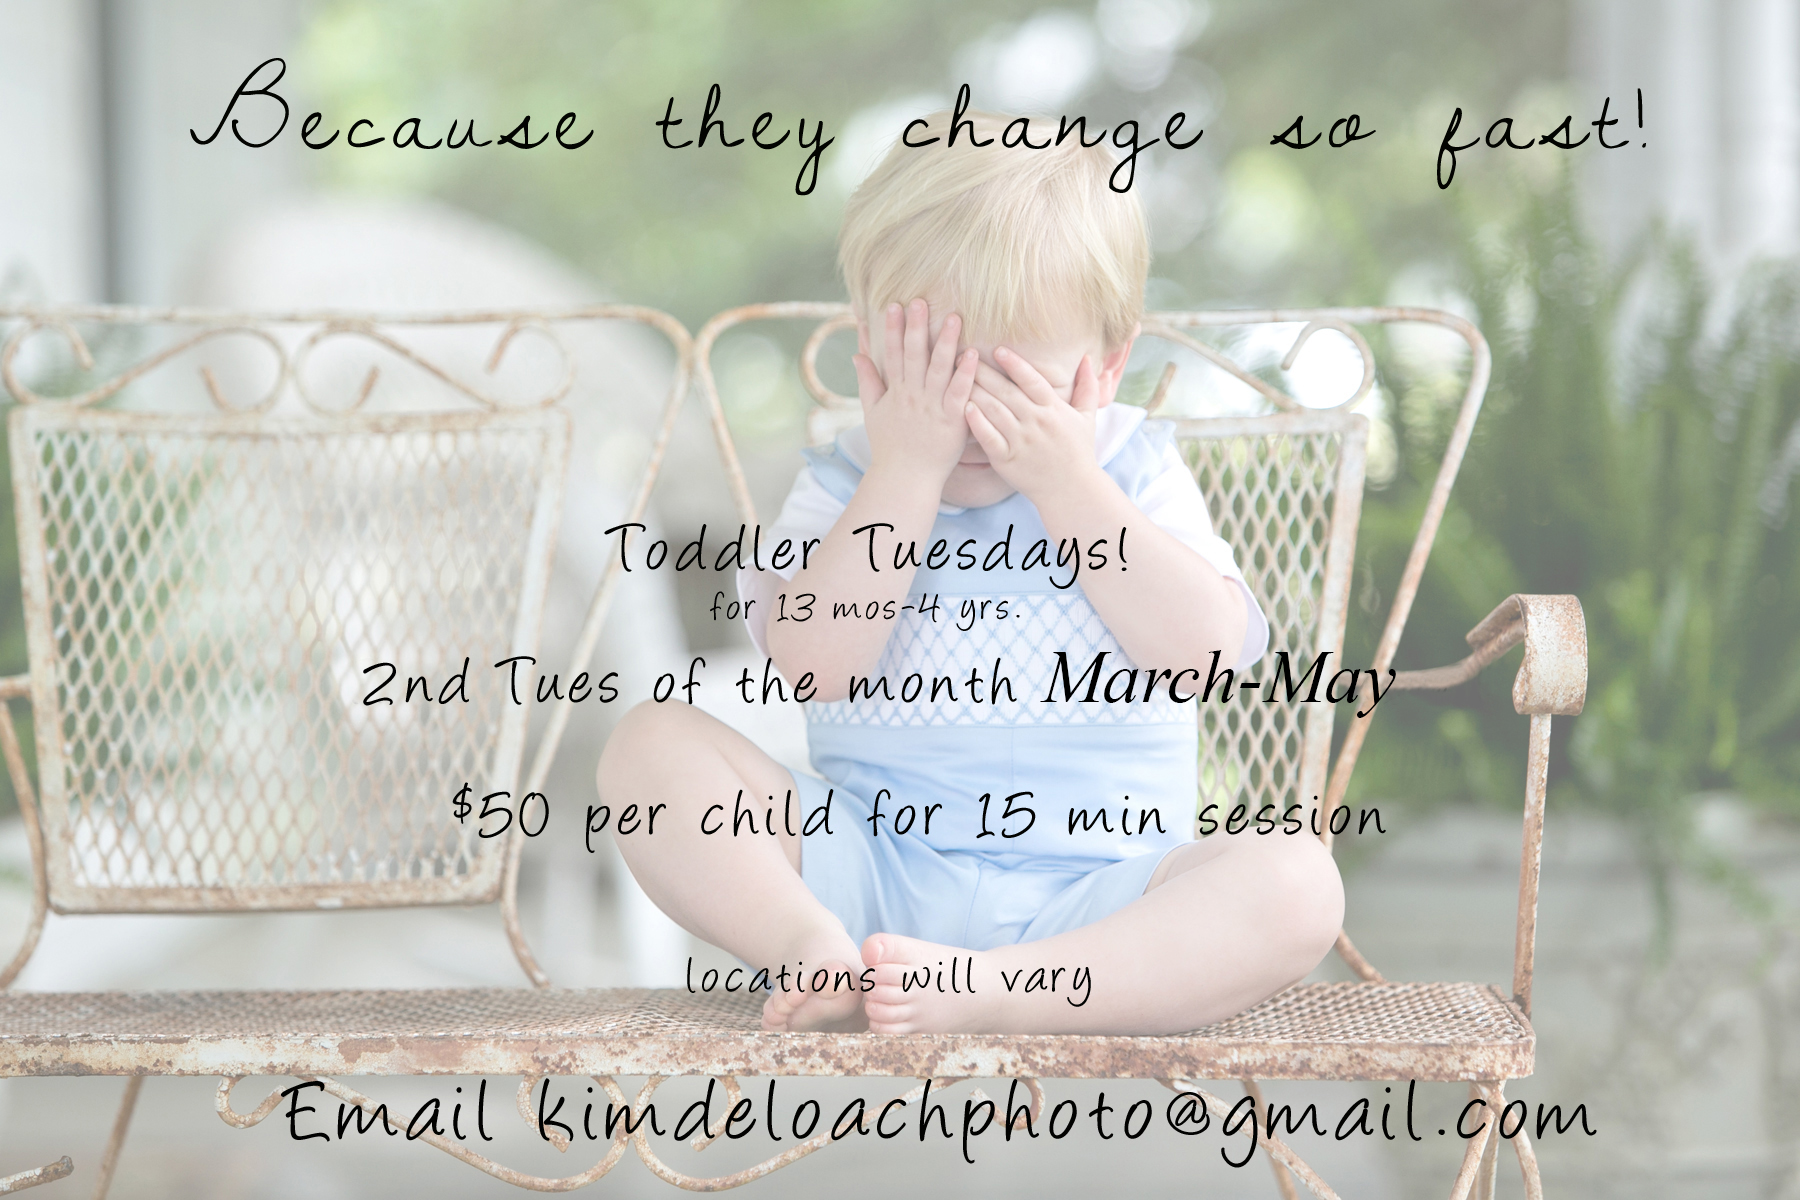 Toddler Tuesday!